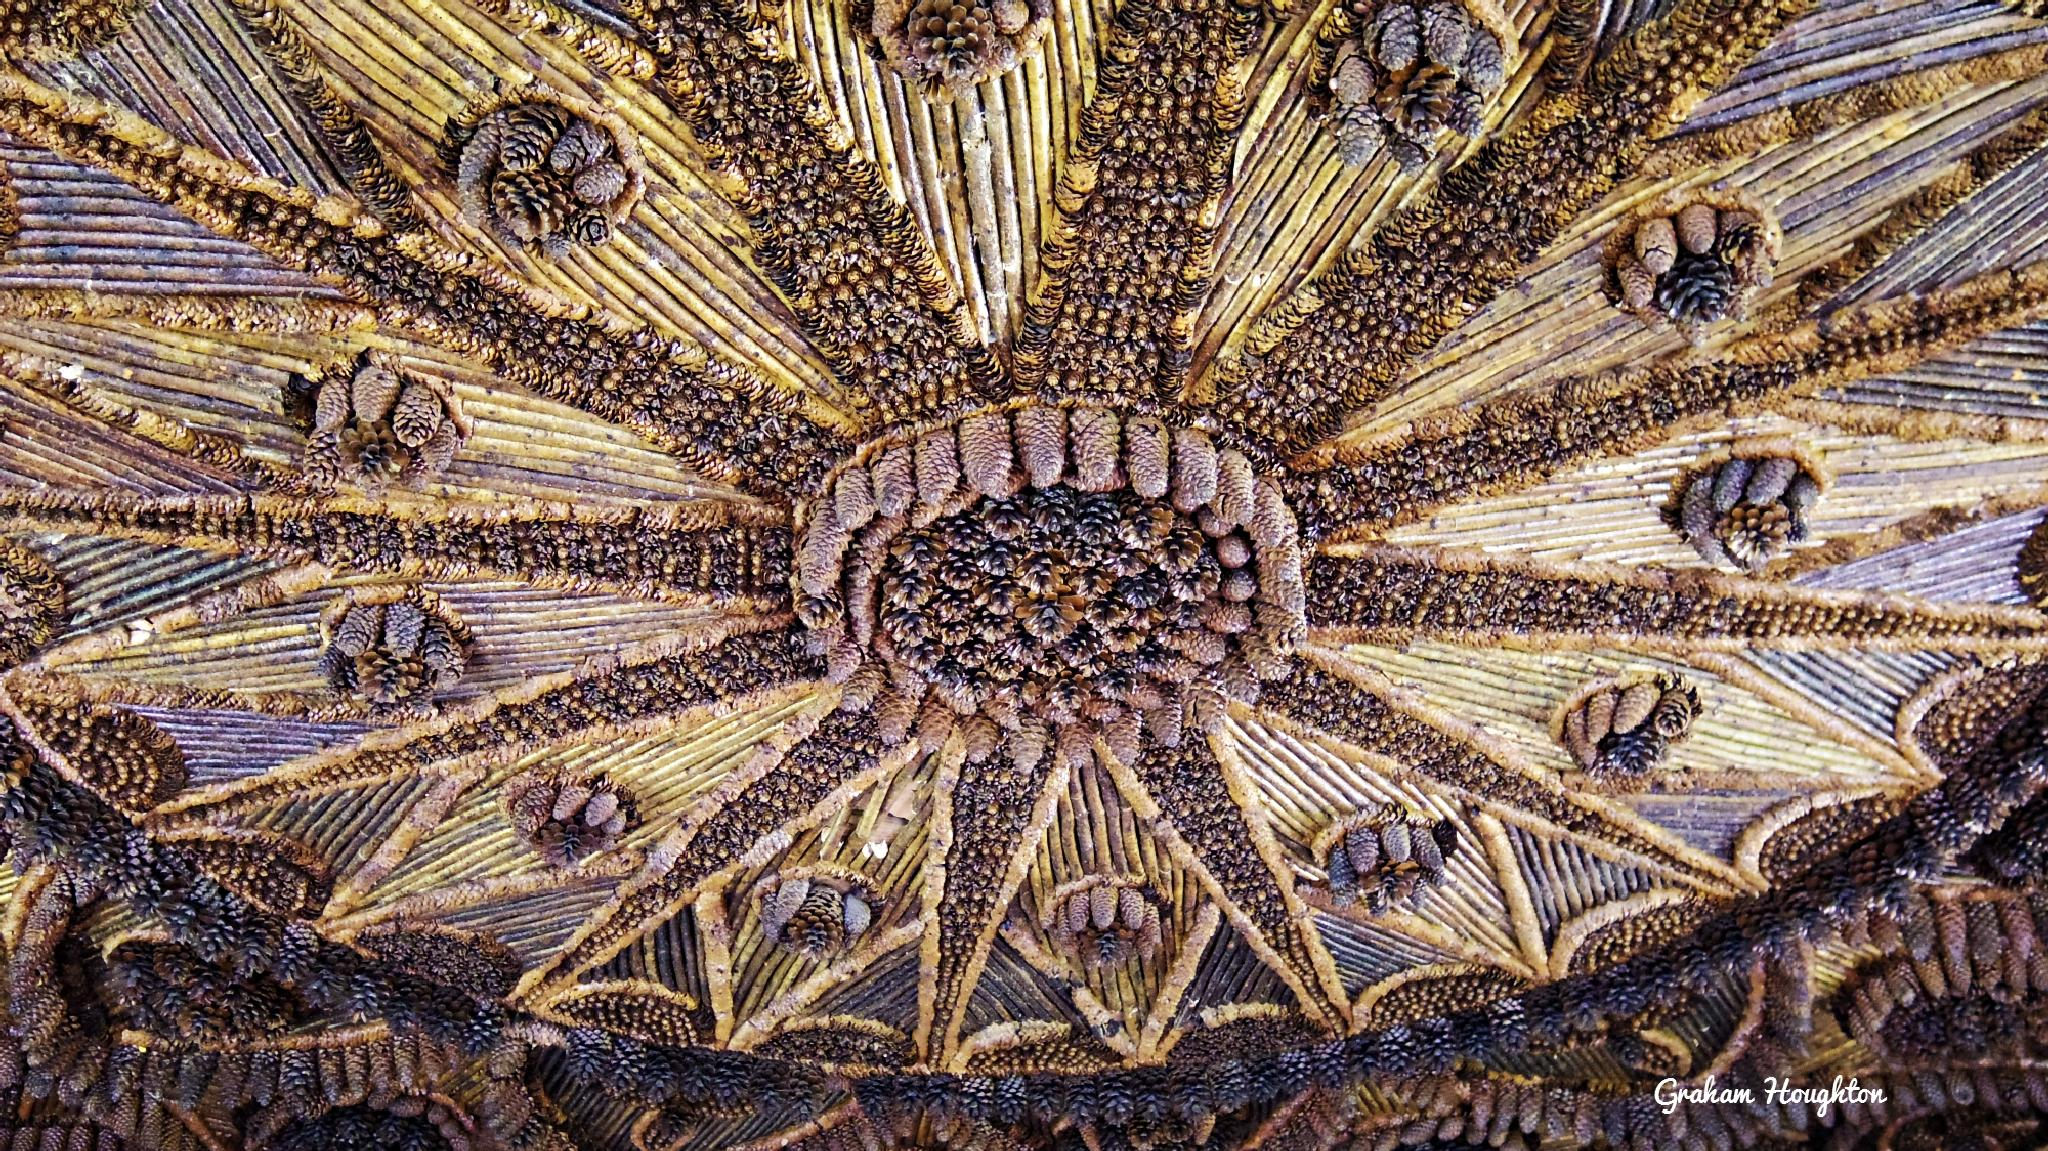 pine cone ceiling, Brodick castle, Arran by Graham Houghton